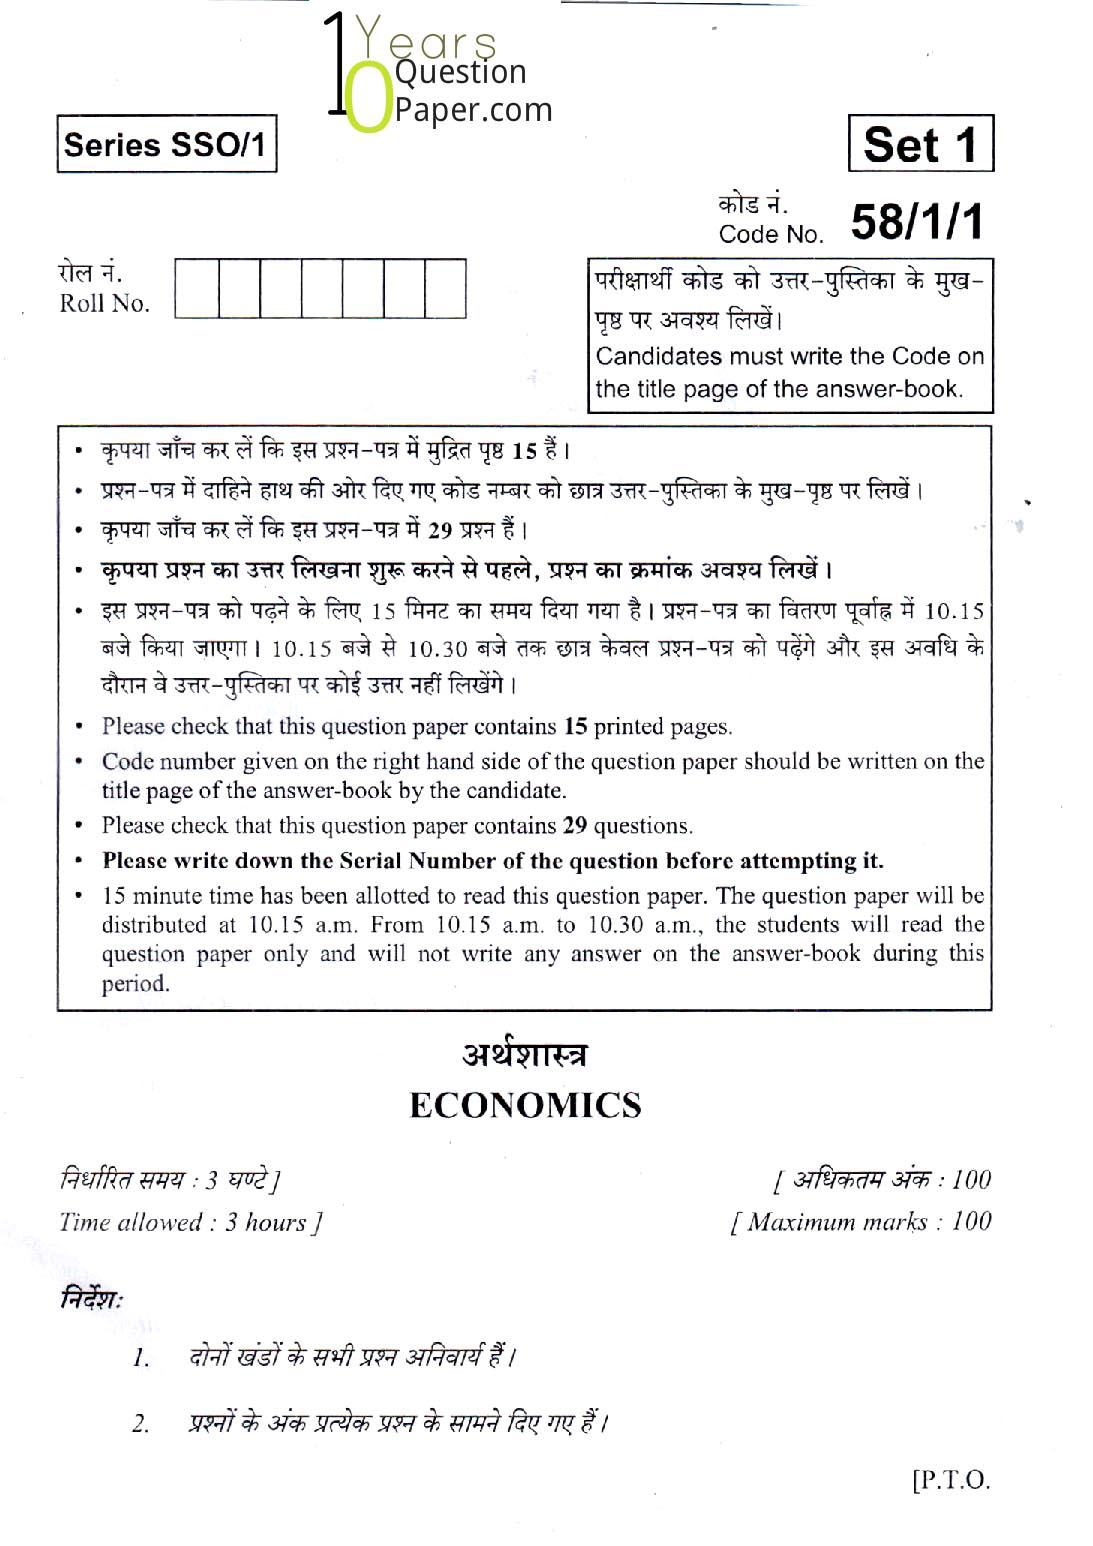 cbse question papers 2010 class xii political science Cbse sample papers for class 12 latest cbse sample papers and  board  examination papers 2010 download previous year board papers,  for the  classes 9, 10, 11 and 12 for the subjects maths, science, physics,.